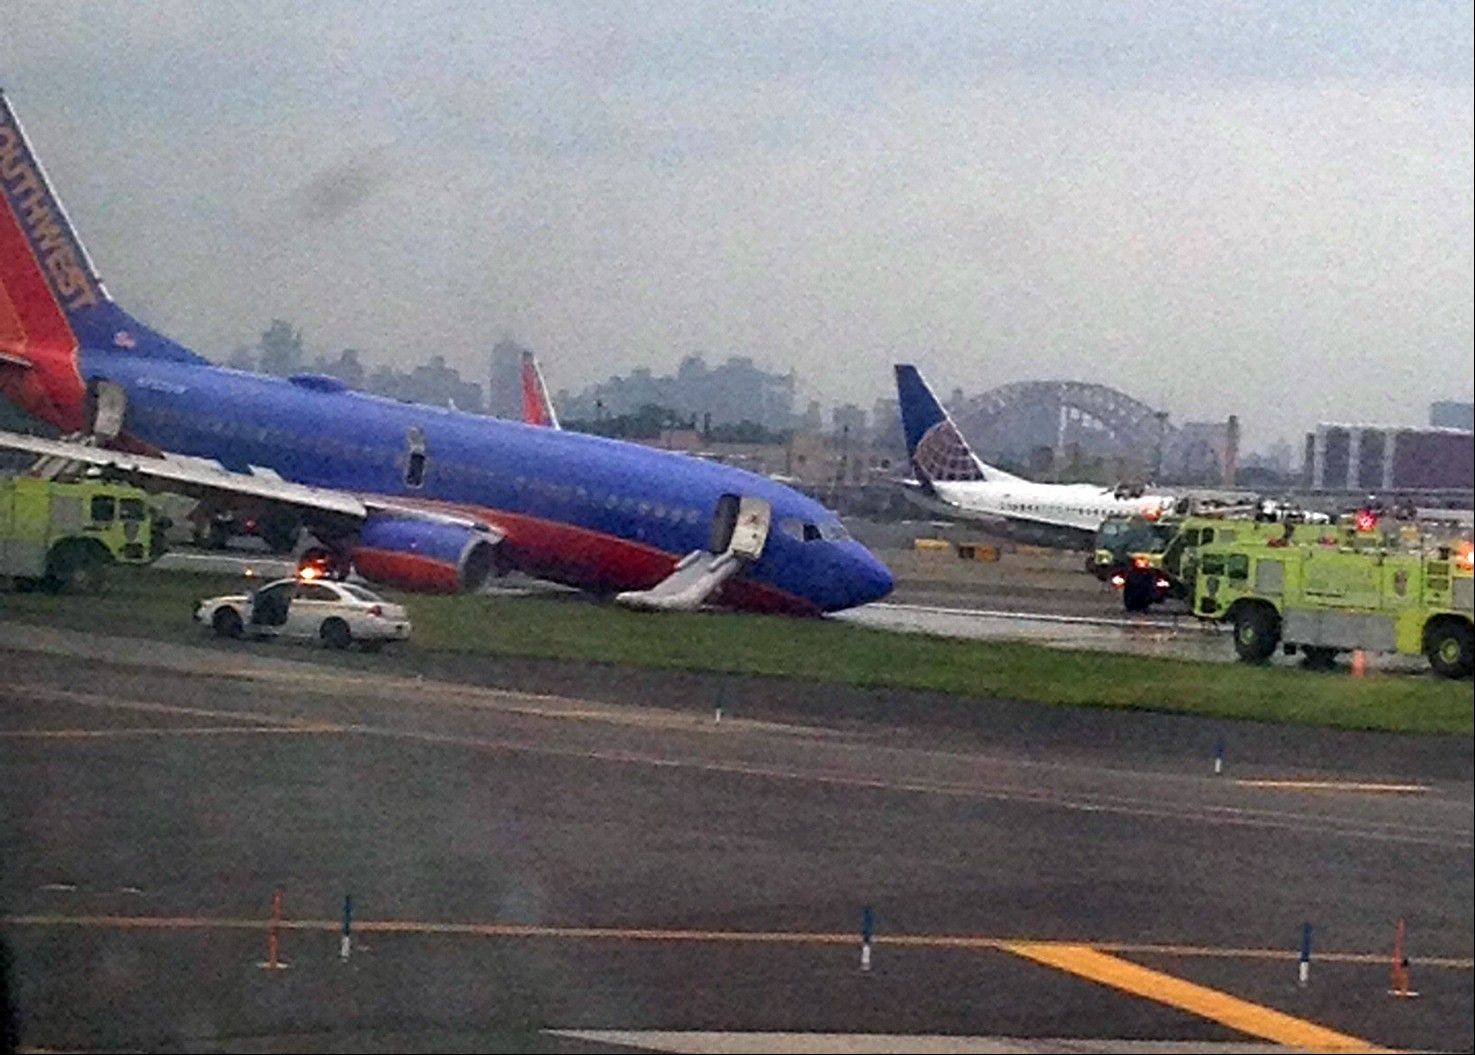 ASSOCIATED PRESS/Jared Rosenstein A Southwest Airlines plane whose nose gear collapsed as it touched down on the runway is surrounded by emergency vehicles at LaGuardia Airport in New York on Monday. The plane was carrying 149 passengers and crew.